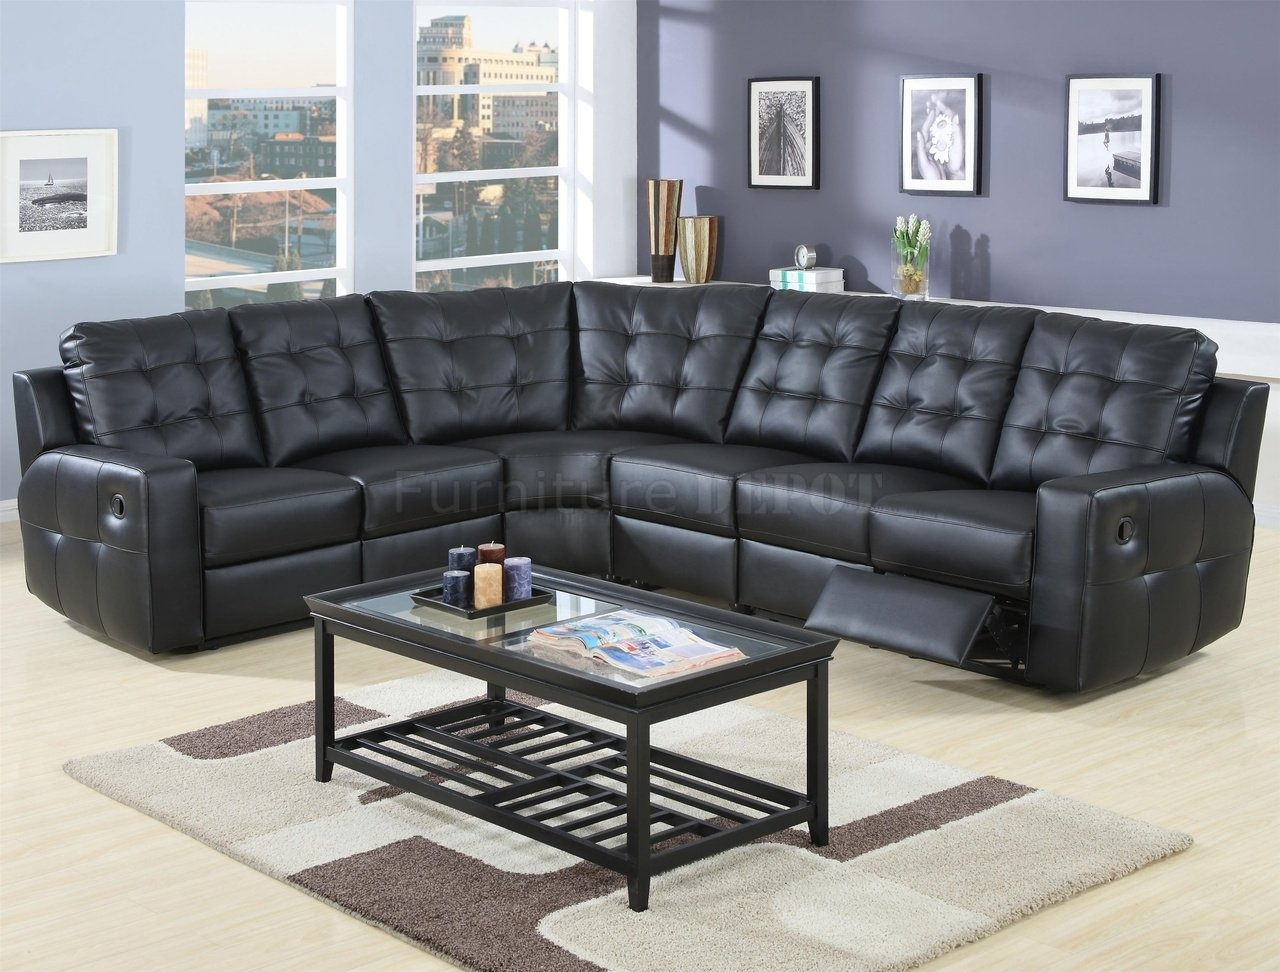 Black Sectional Sofa With Recliners – Nrhcares In Leather Recliner Sectional Sofas (Image 2 of 10)